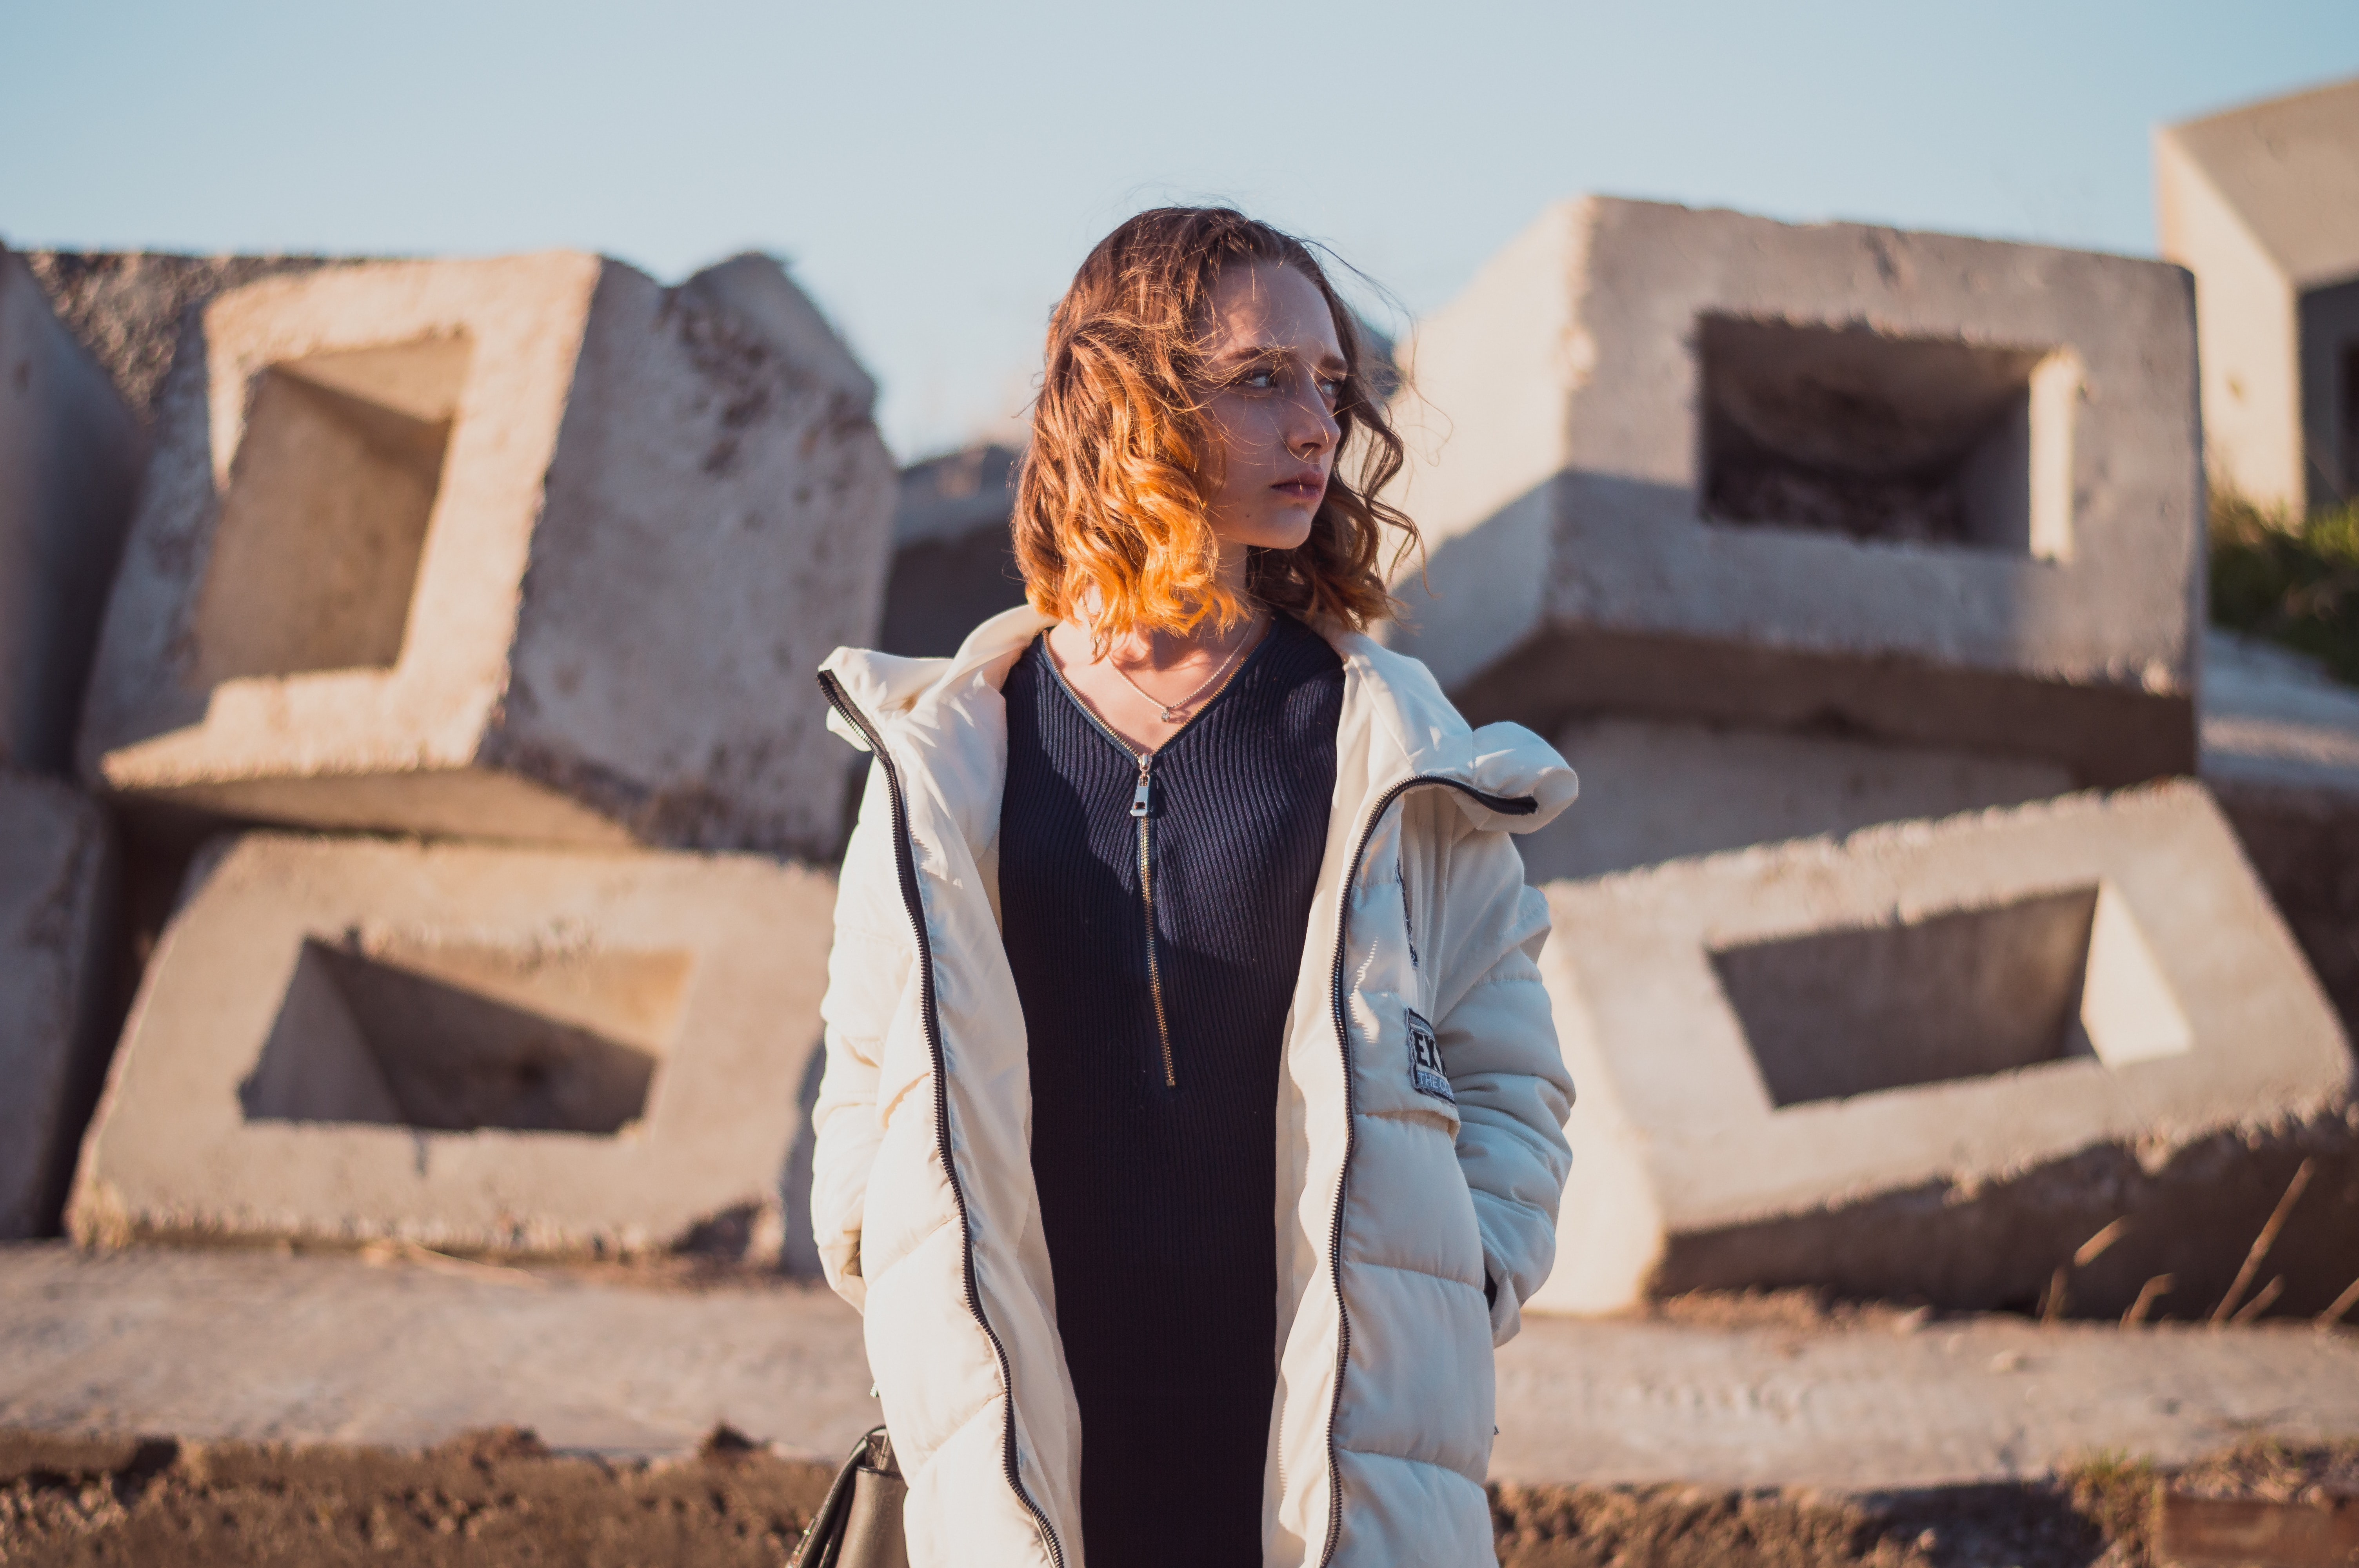 Woman in an unzipped winter jacket by construction cinder blocks